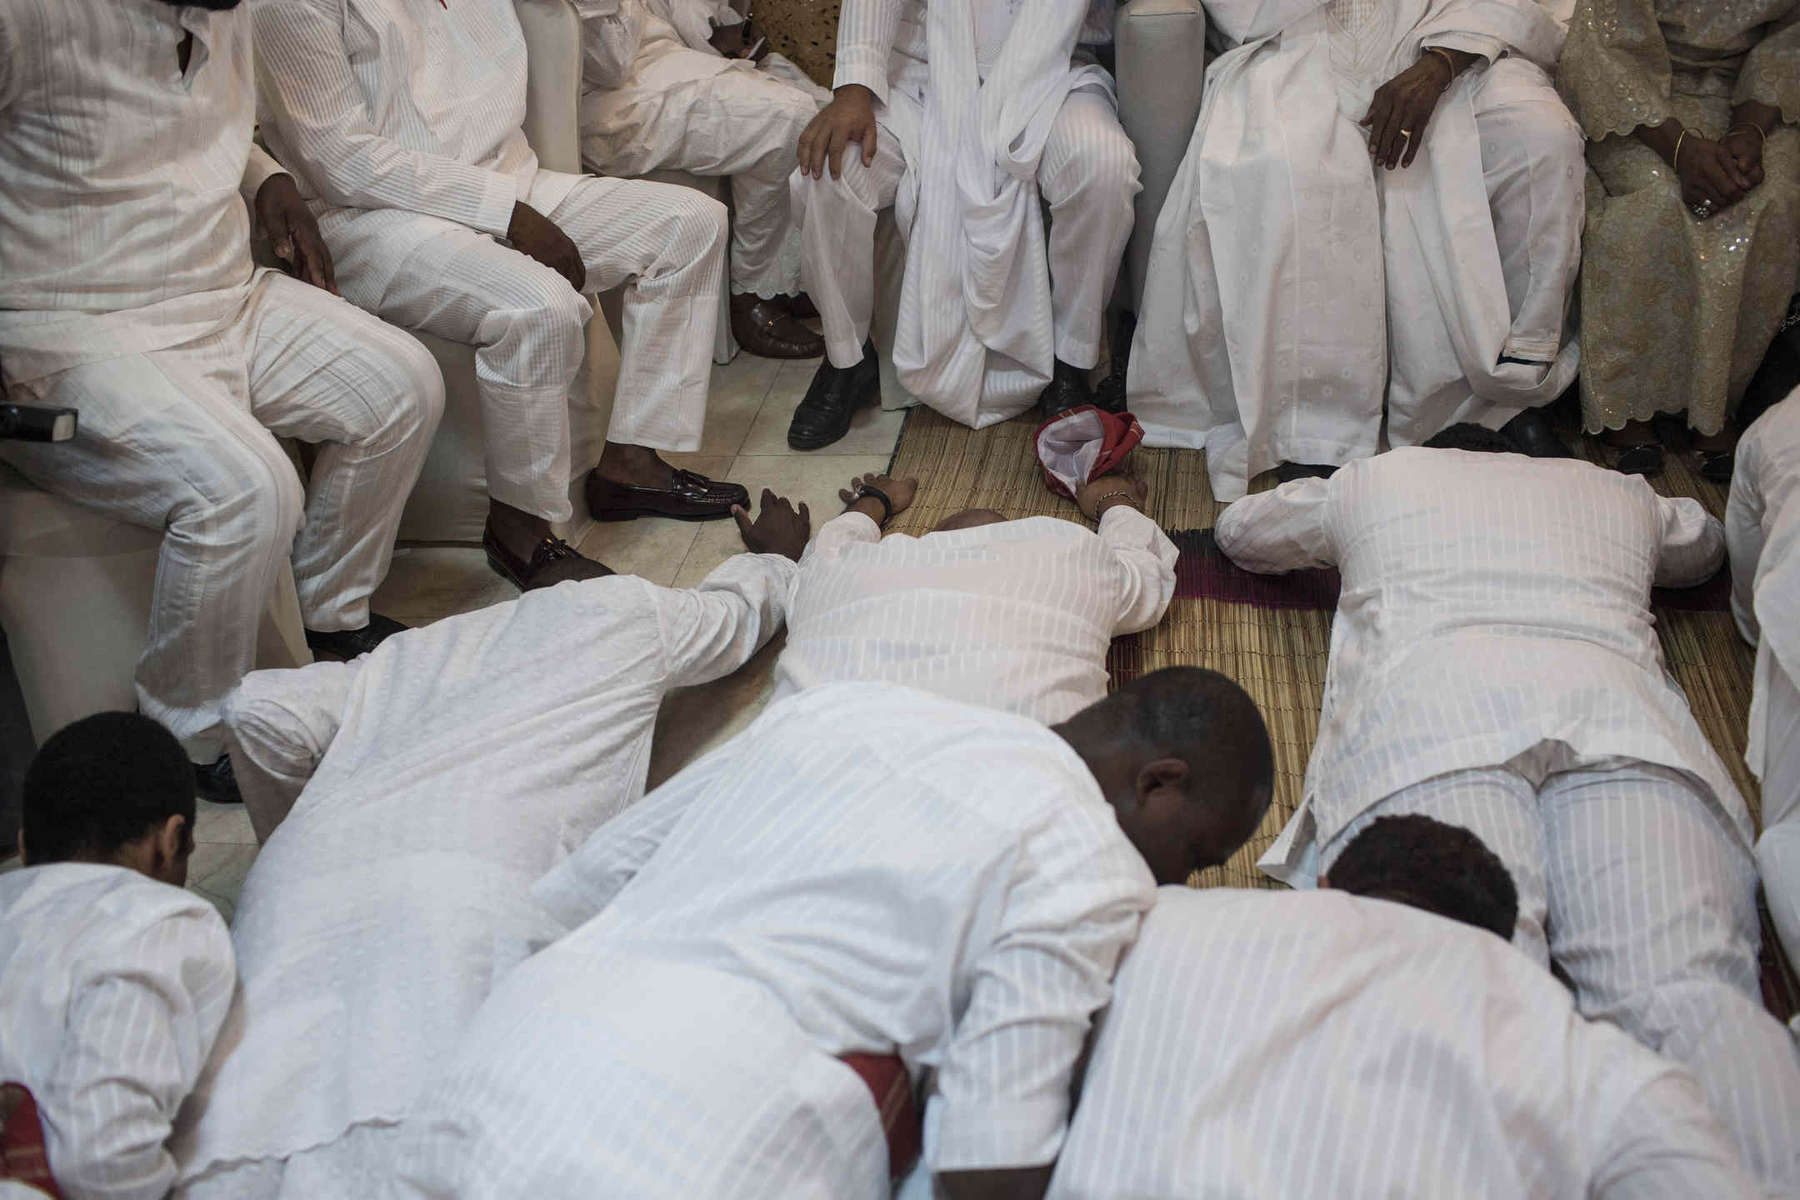 The groom and his groomsmen must prostrate themselves in front of the bride's family before they accept him.